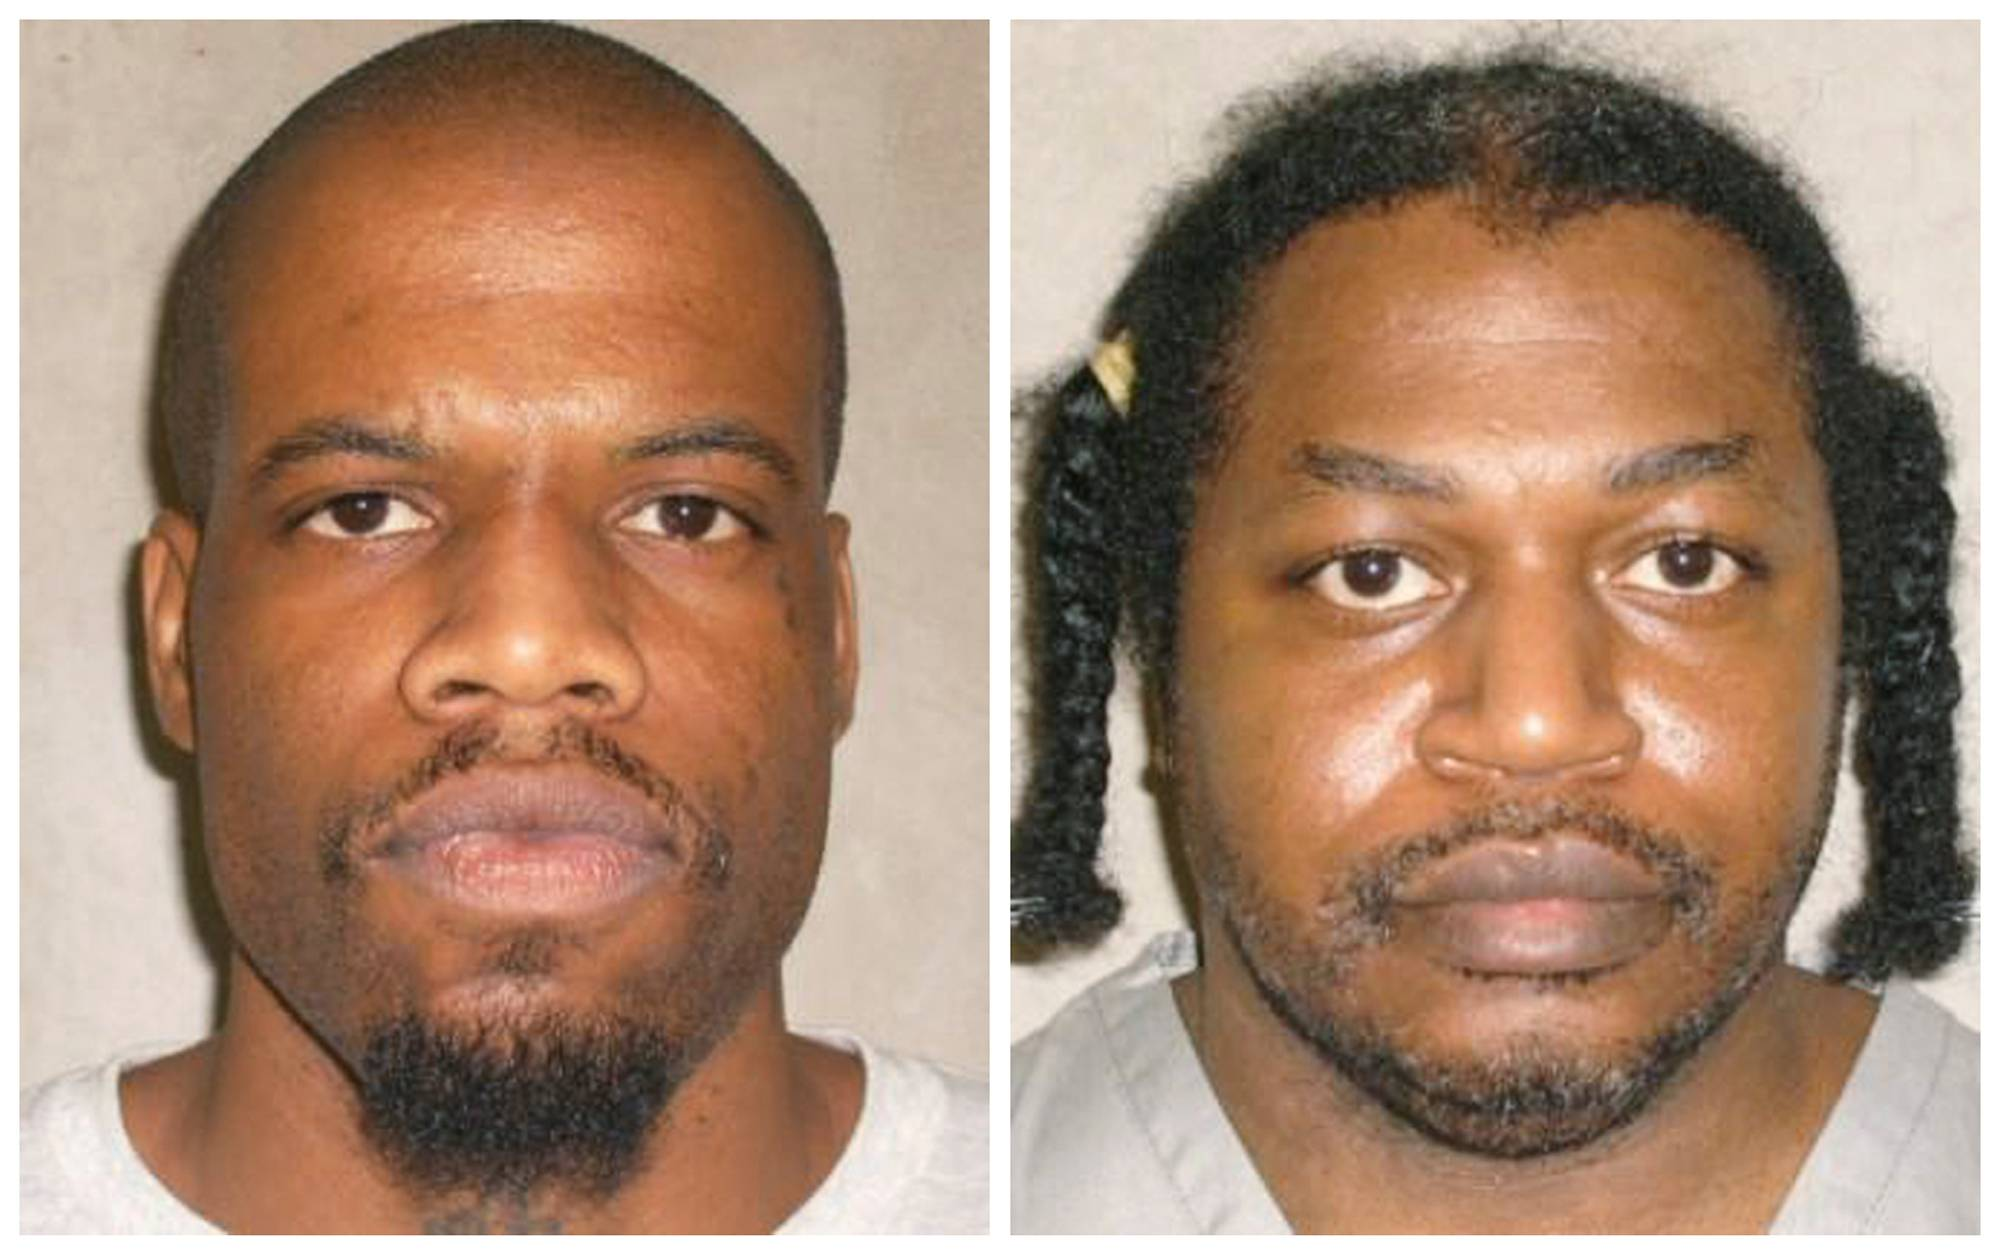 Clayton Lockett, left, and Charles Warner are seen in the composite photograph. Both were scheduled to be executed Tuesday, but Lockett's execution was halted because the delivery of a new drug combination was botched. He died of a heart attack, and Warner's execution was then postponed.